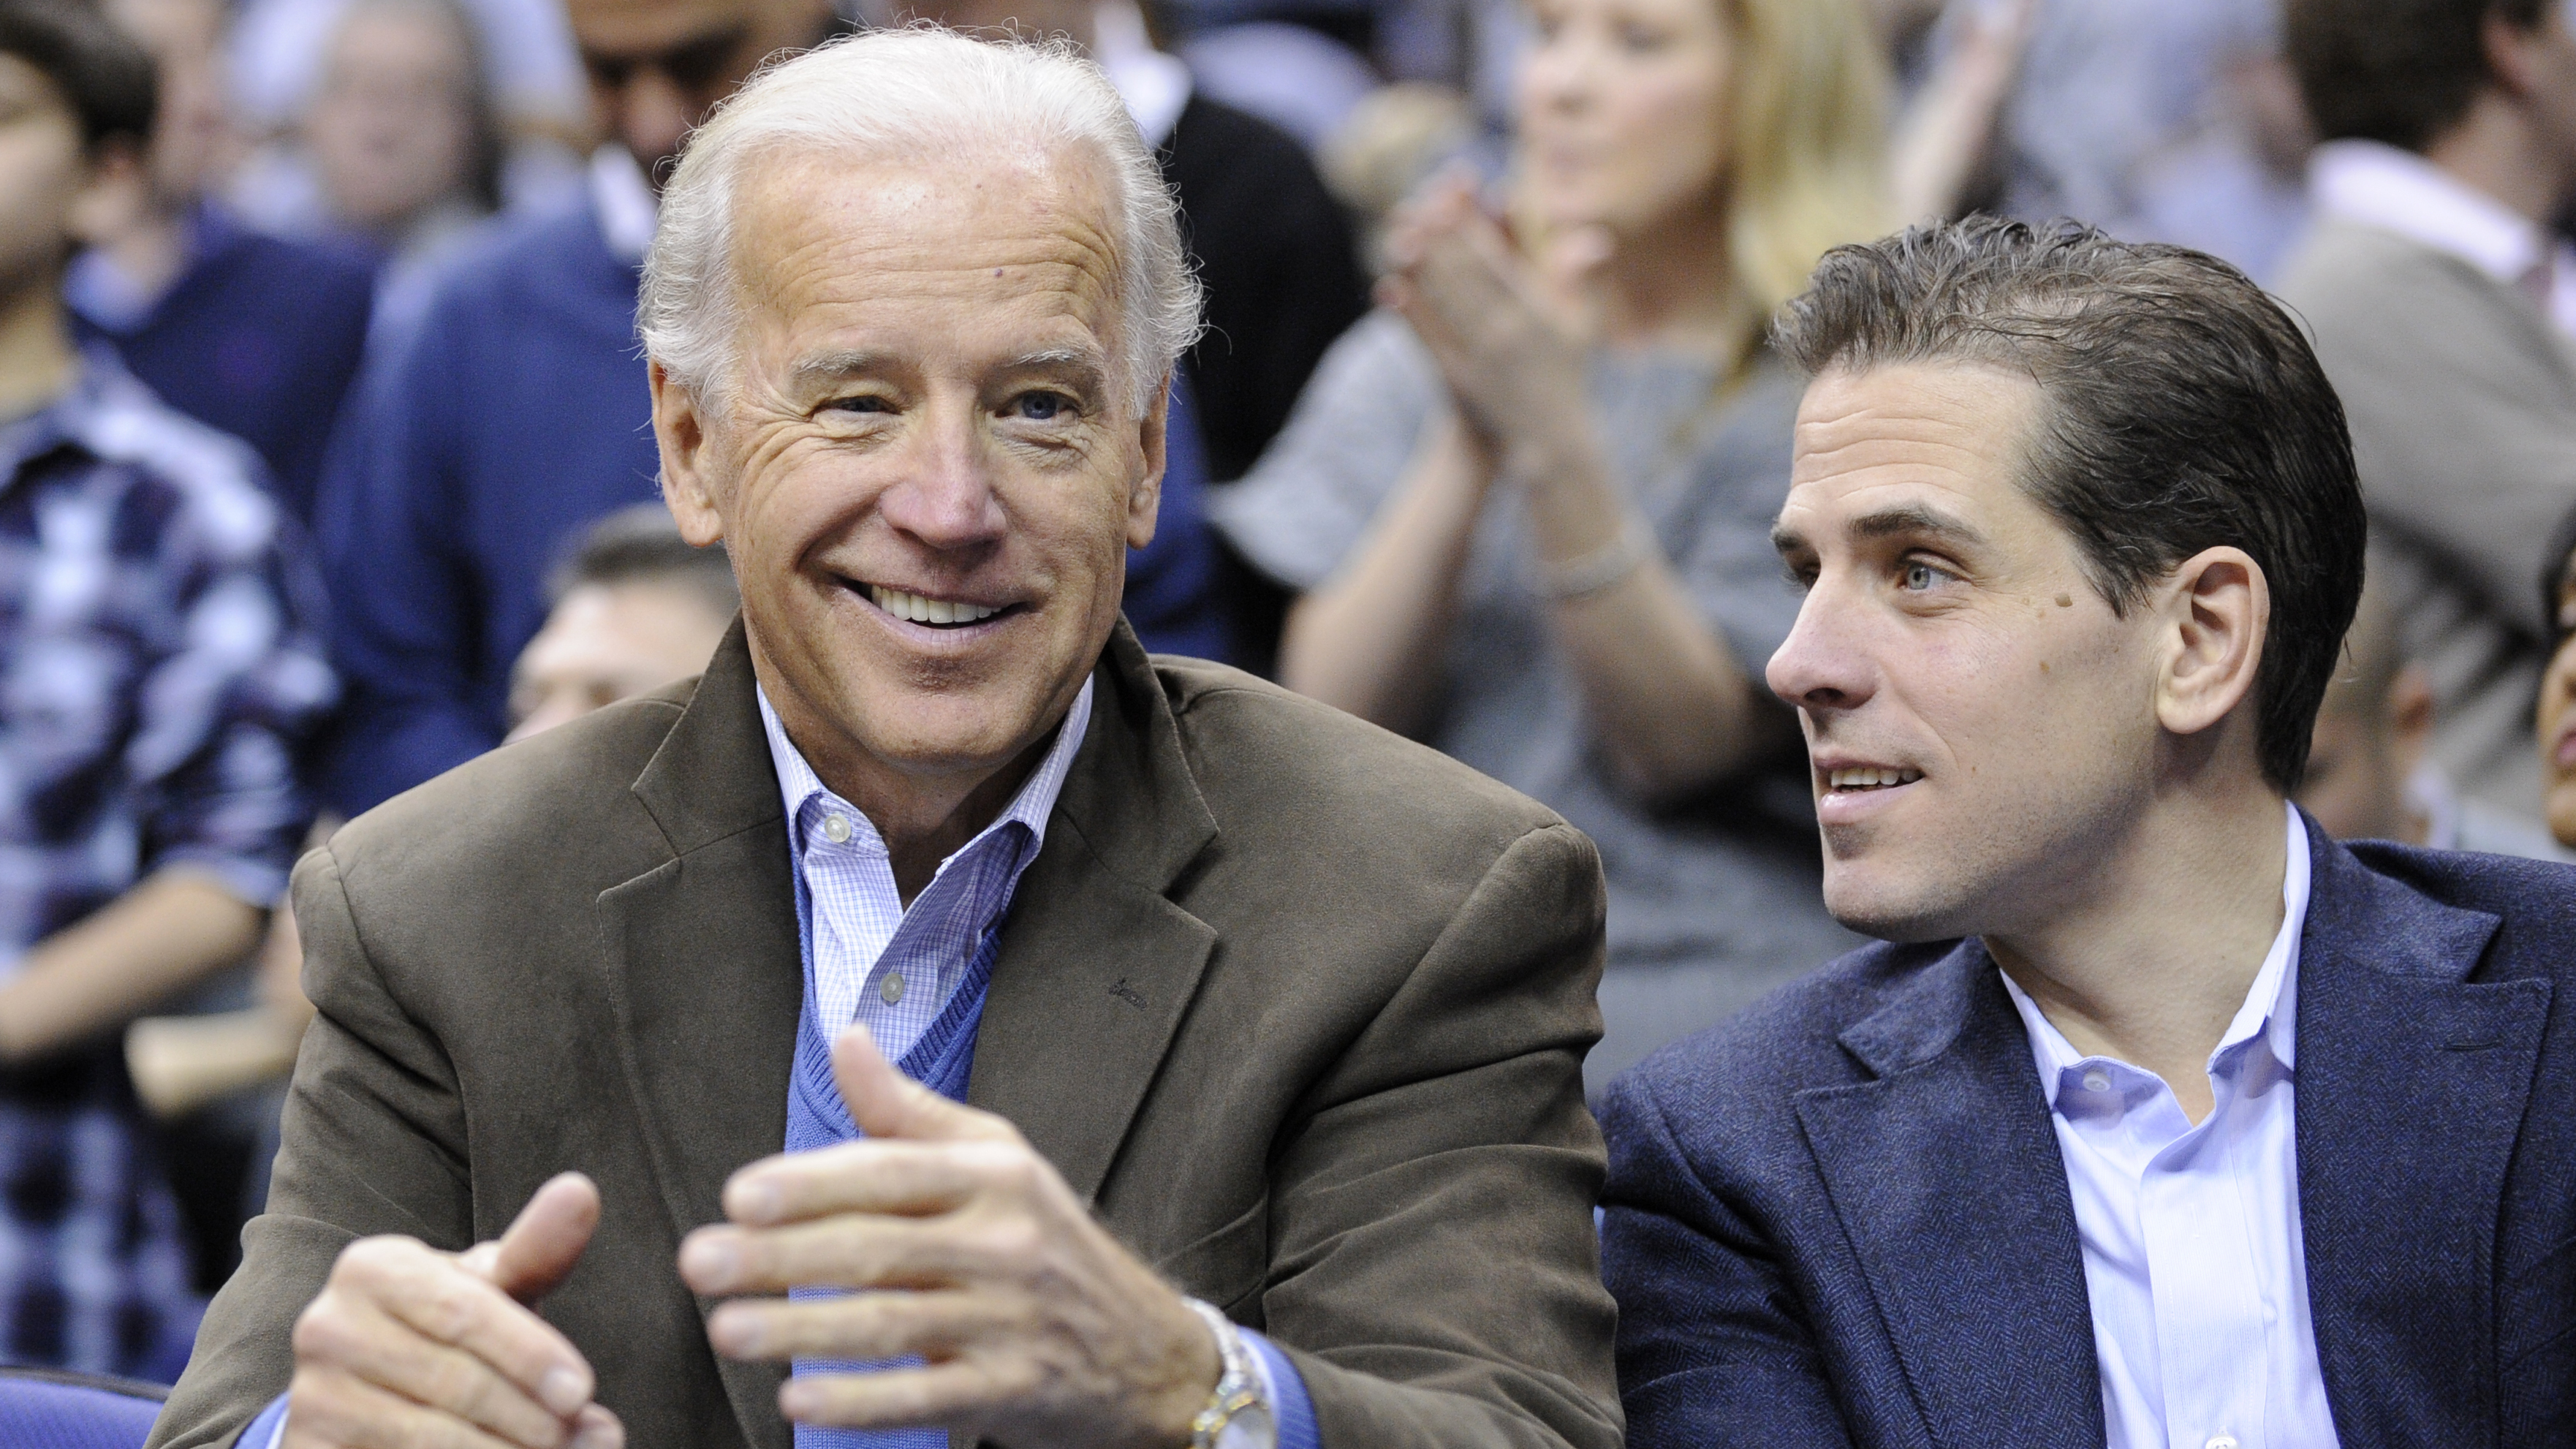 What Were The Bidens Doing In Ukraine? 5 Questions Answered